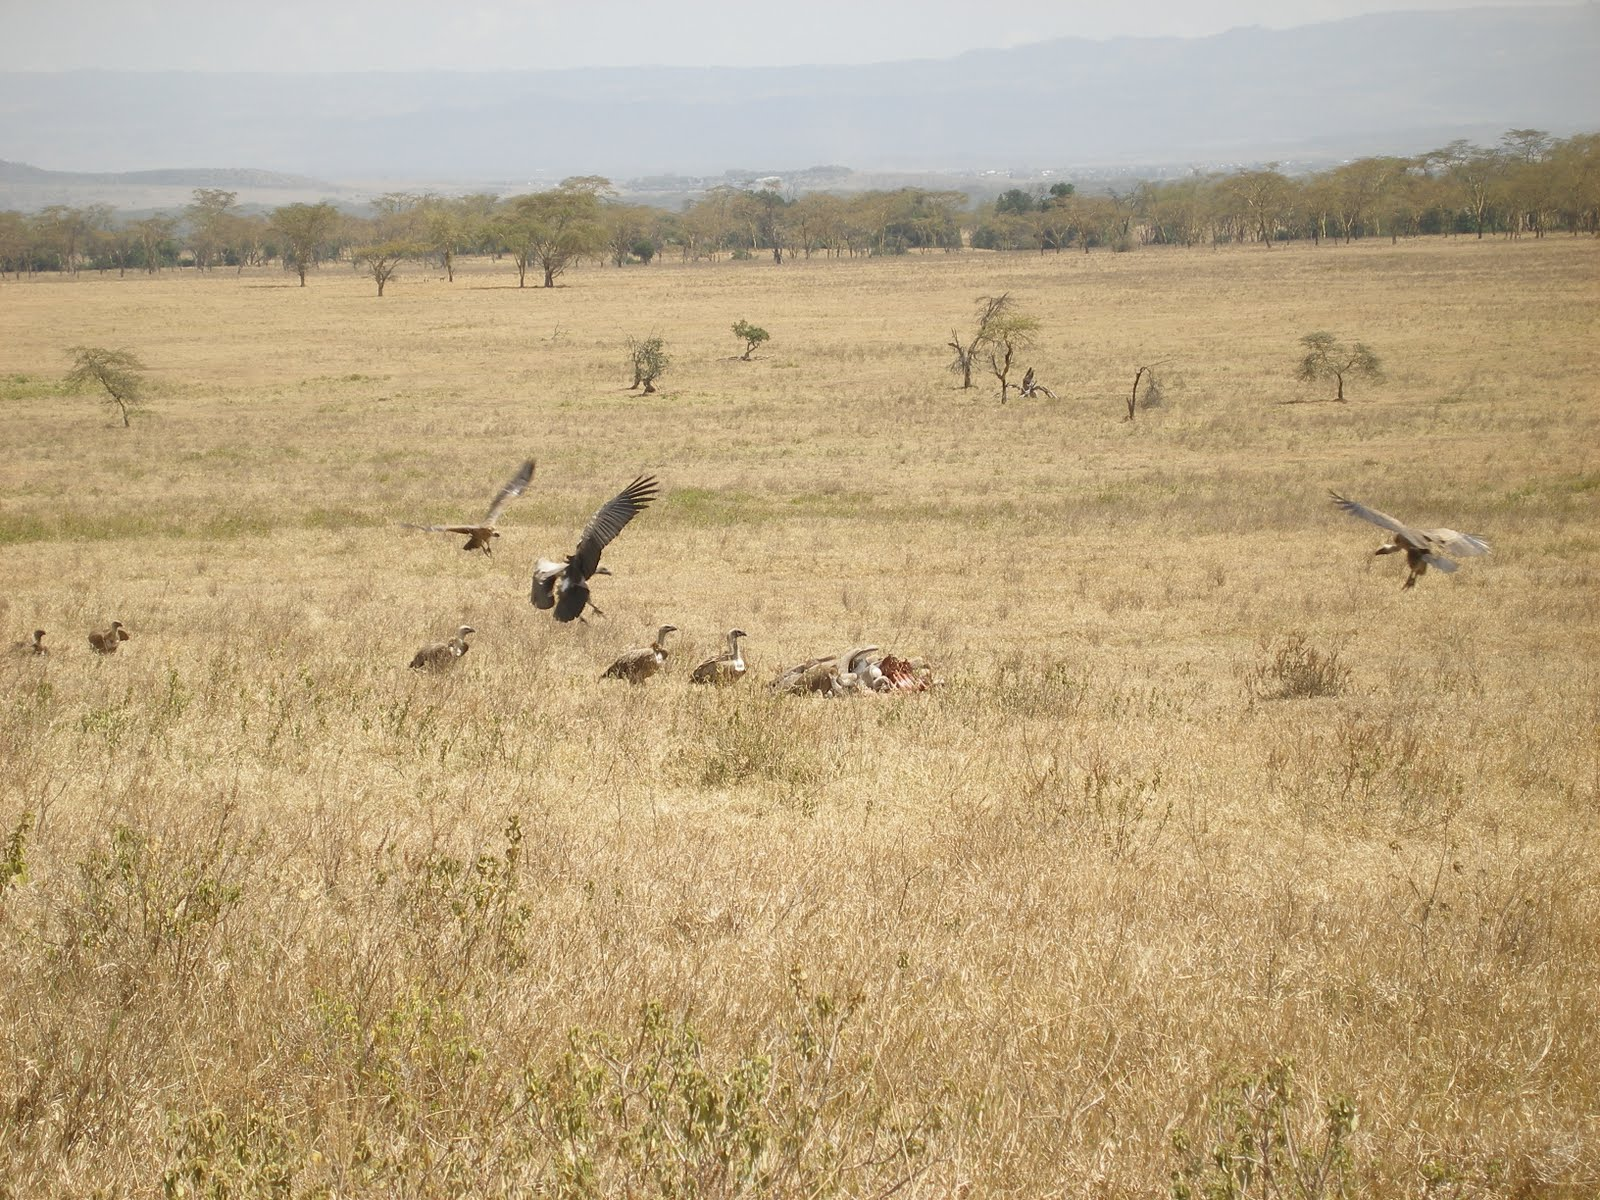 African Children Starving Vulture  ruppell s griffon vulturesAfrican Children Starving Vulture